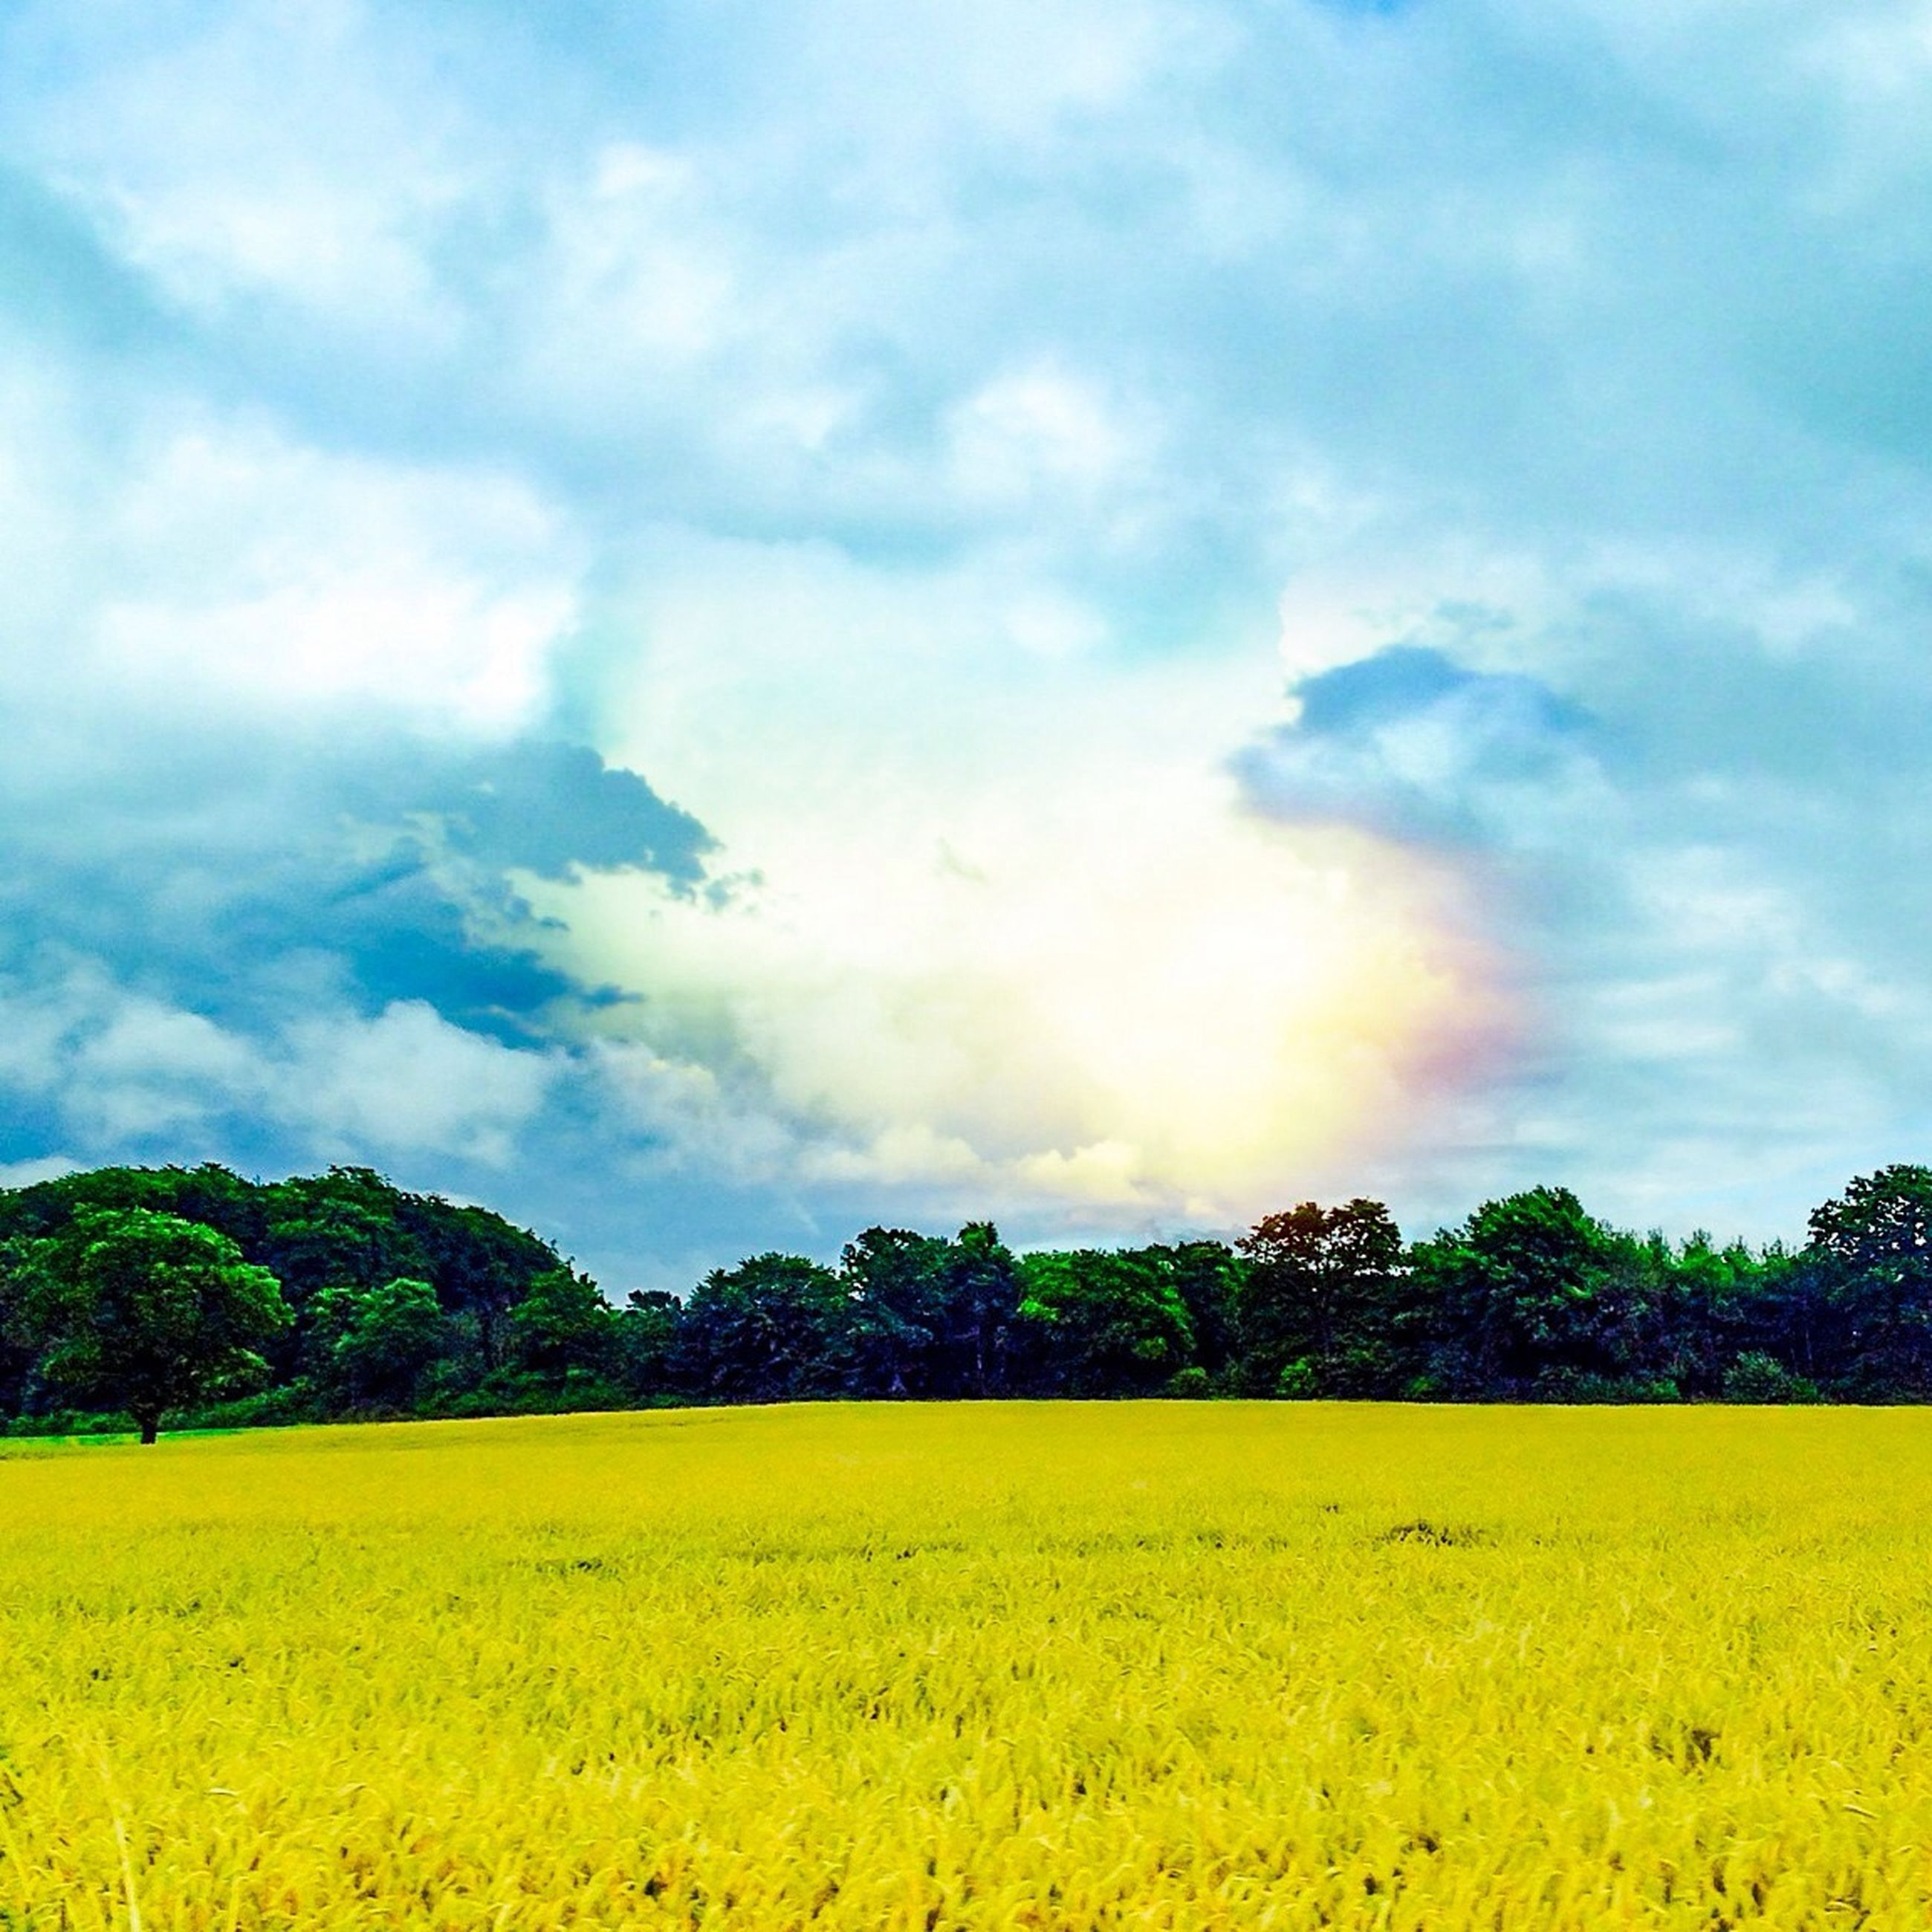 sky, tranquil scene, tranquility, scenics, beauty in nature, yellow, cloud - sky, cloud, nature, landscape, idyllic, tree, cloudy, growth, field, blue, green color, outdoors, no people, rural scene